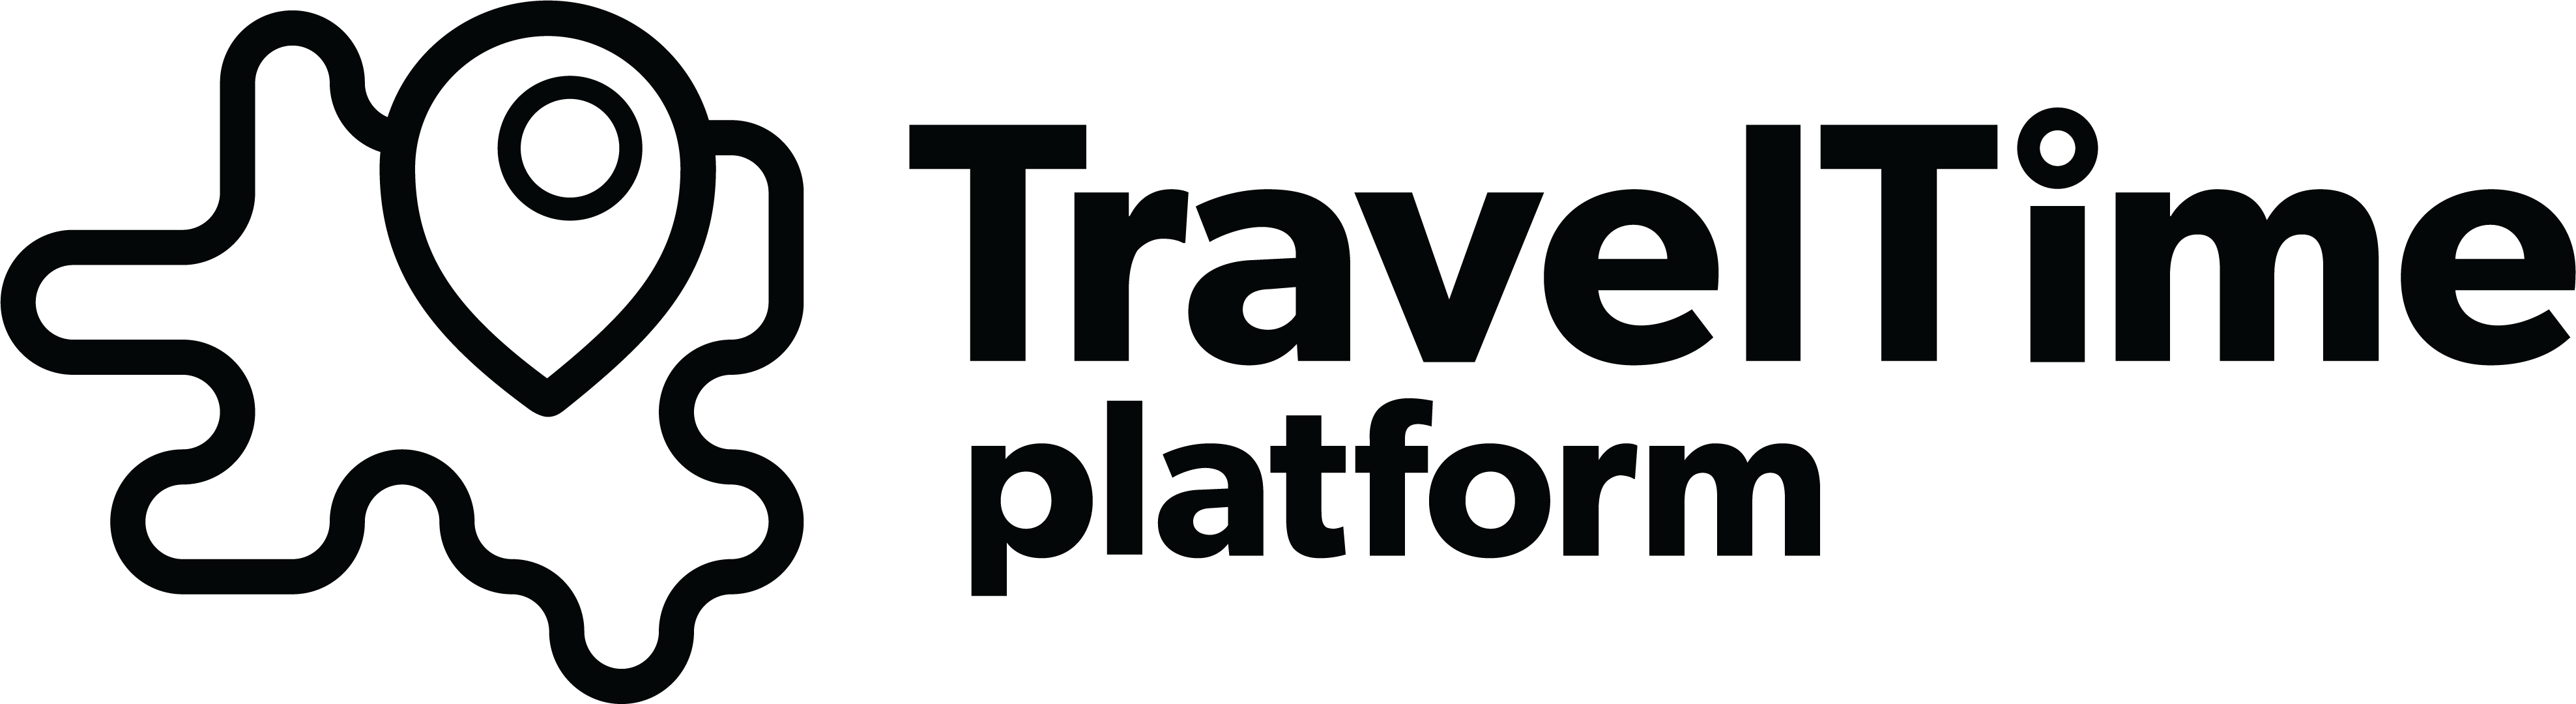 traveltime-logo.png